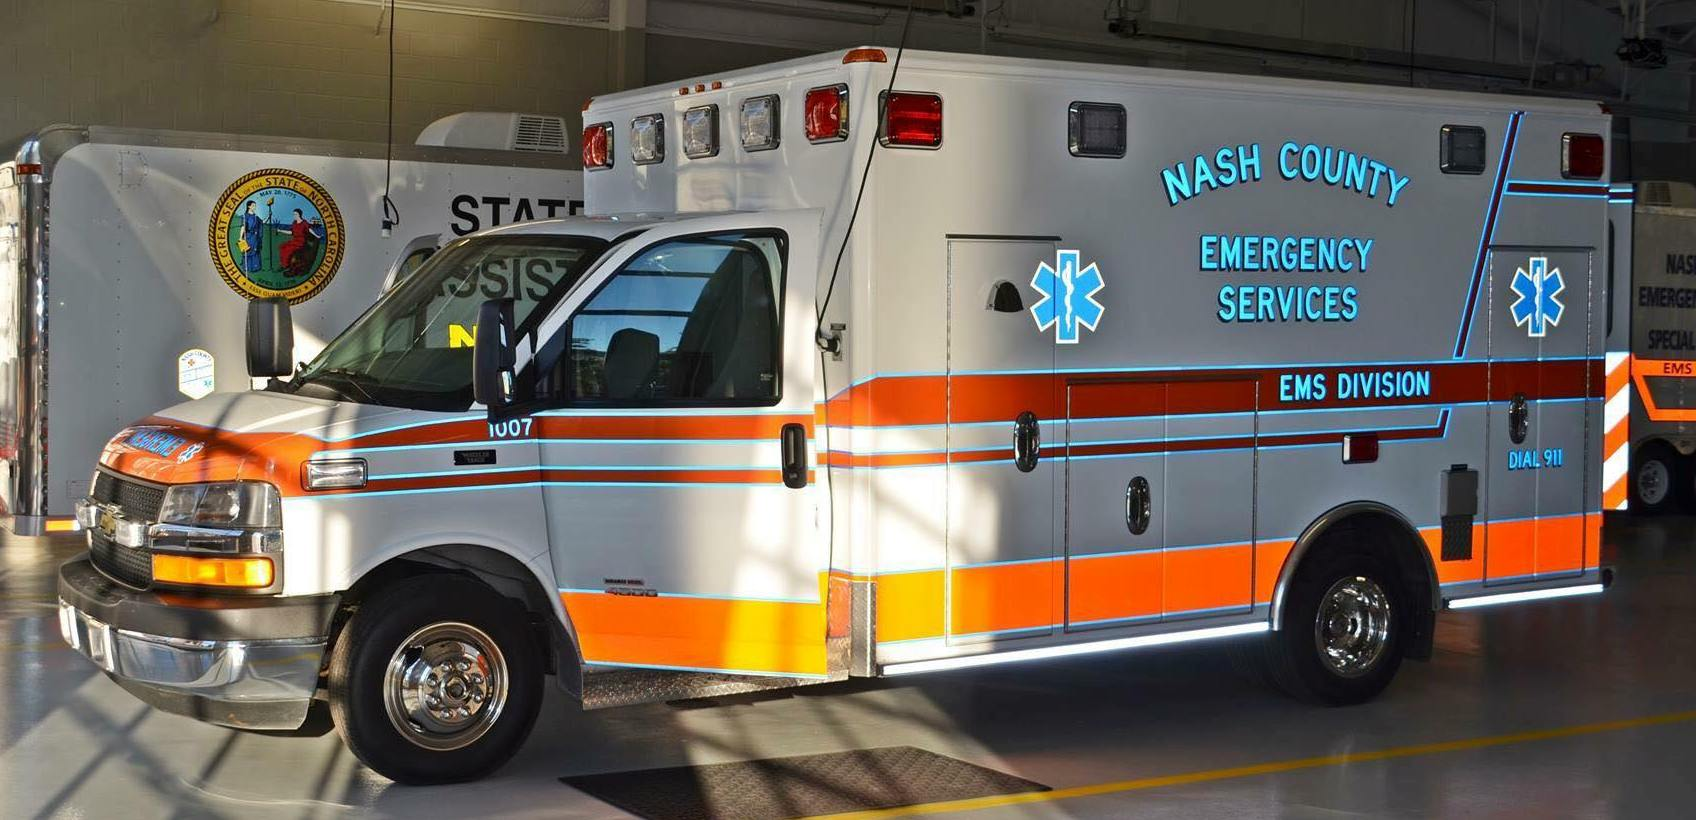 Emergency Medical Services | Nash County, NC - Official Website